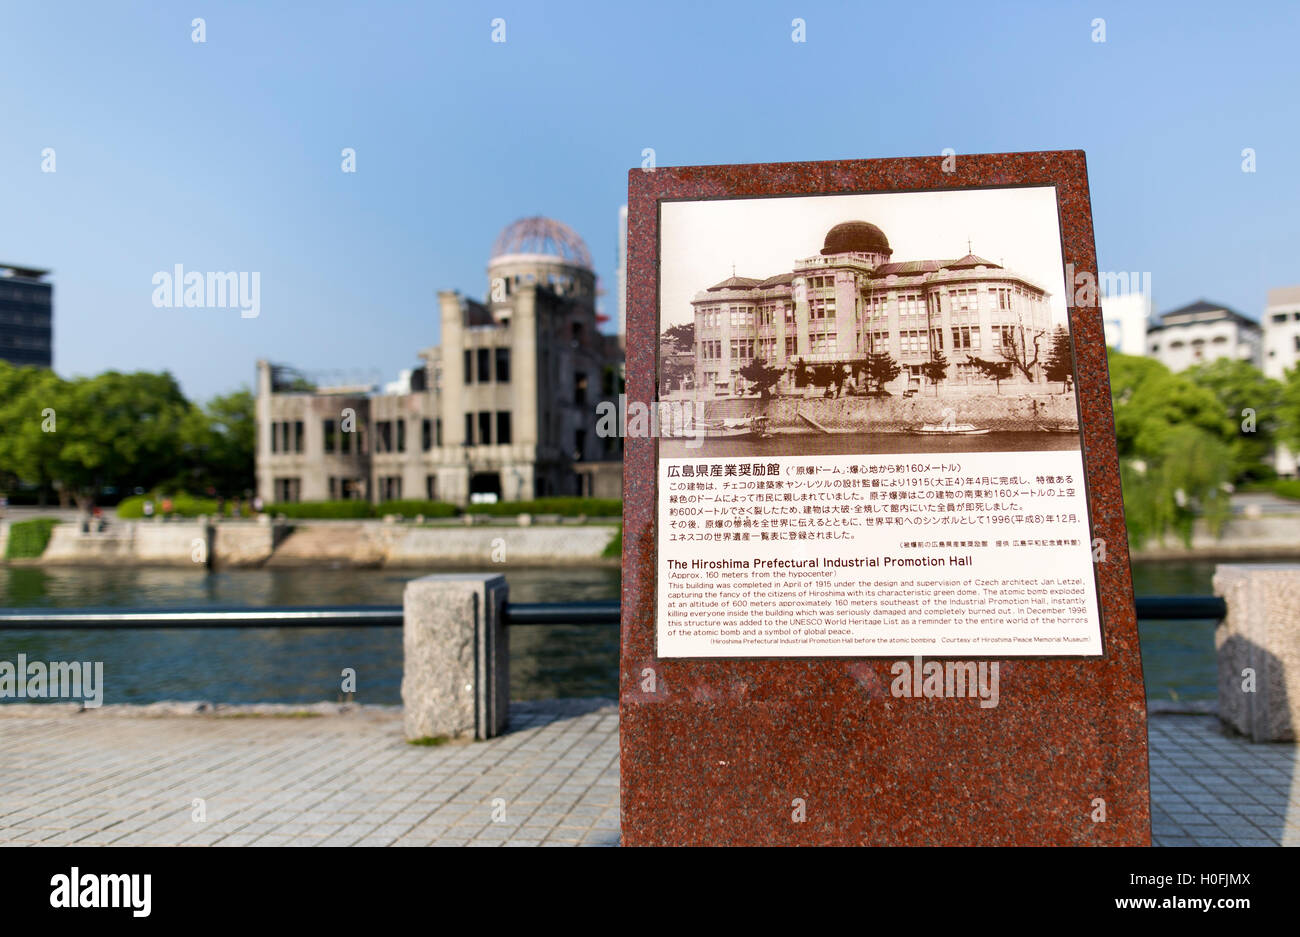 Hiroshima Industrial Promotion Hall, a history of the explosion in English and Japanese - Stock Image